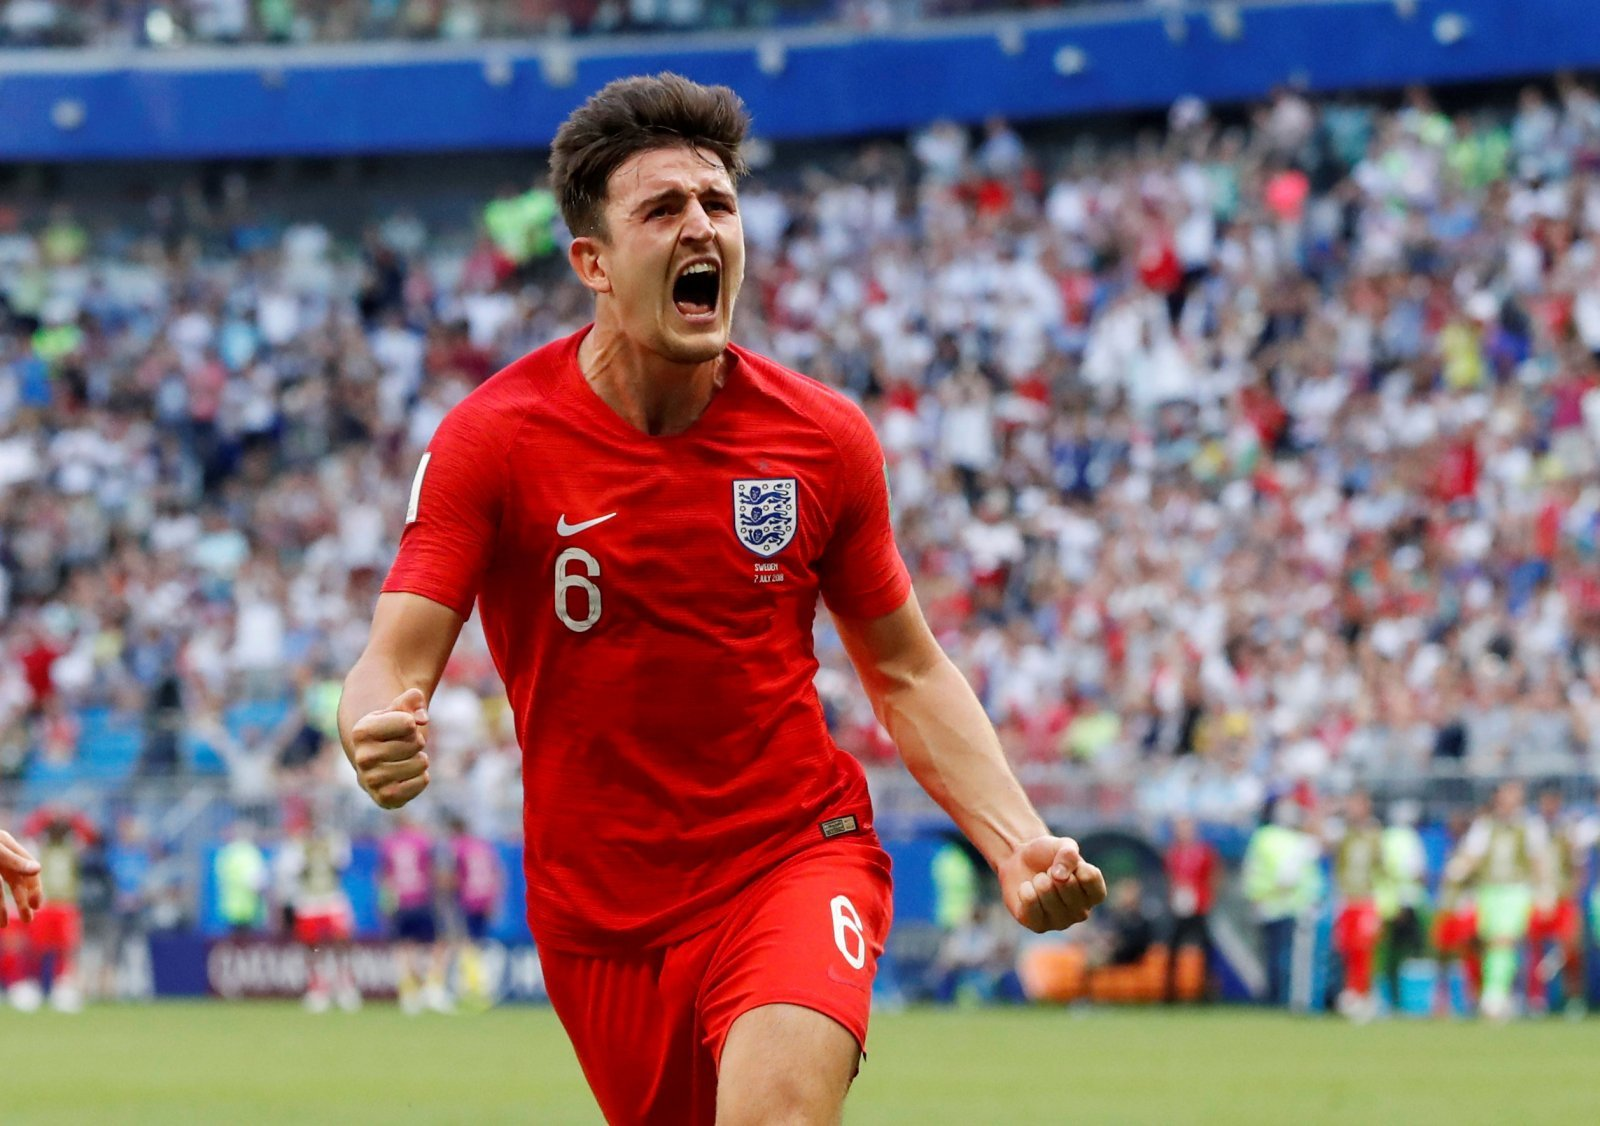 Harry Maguire really has done enough for a move to Manchester United